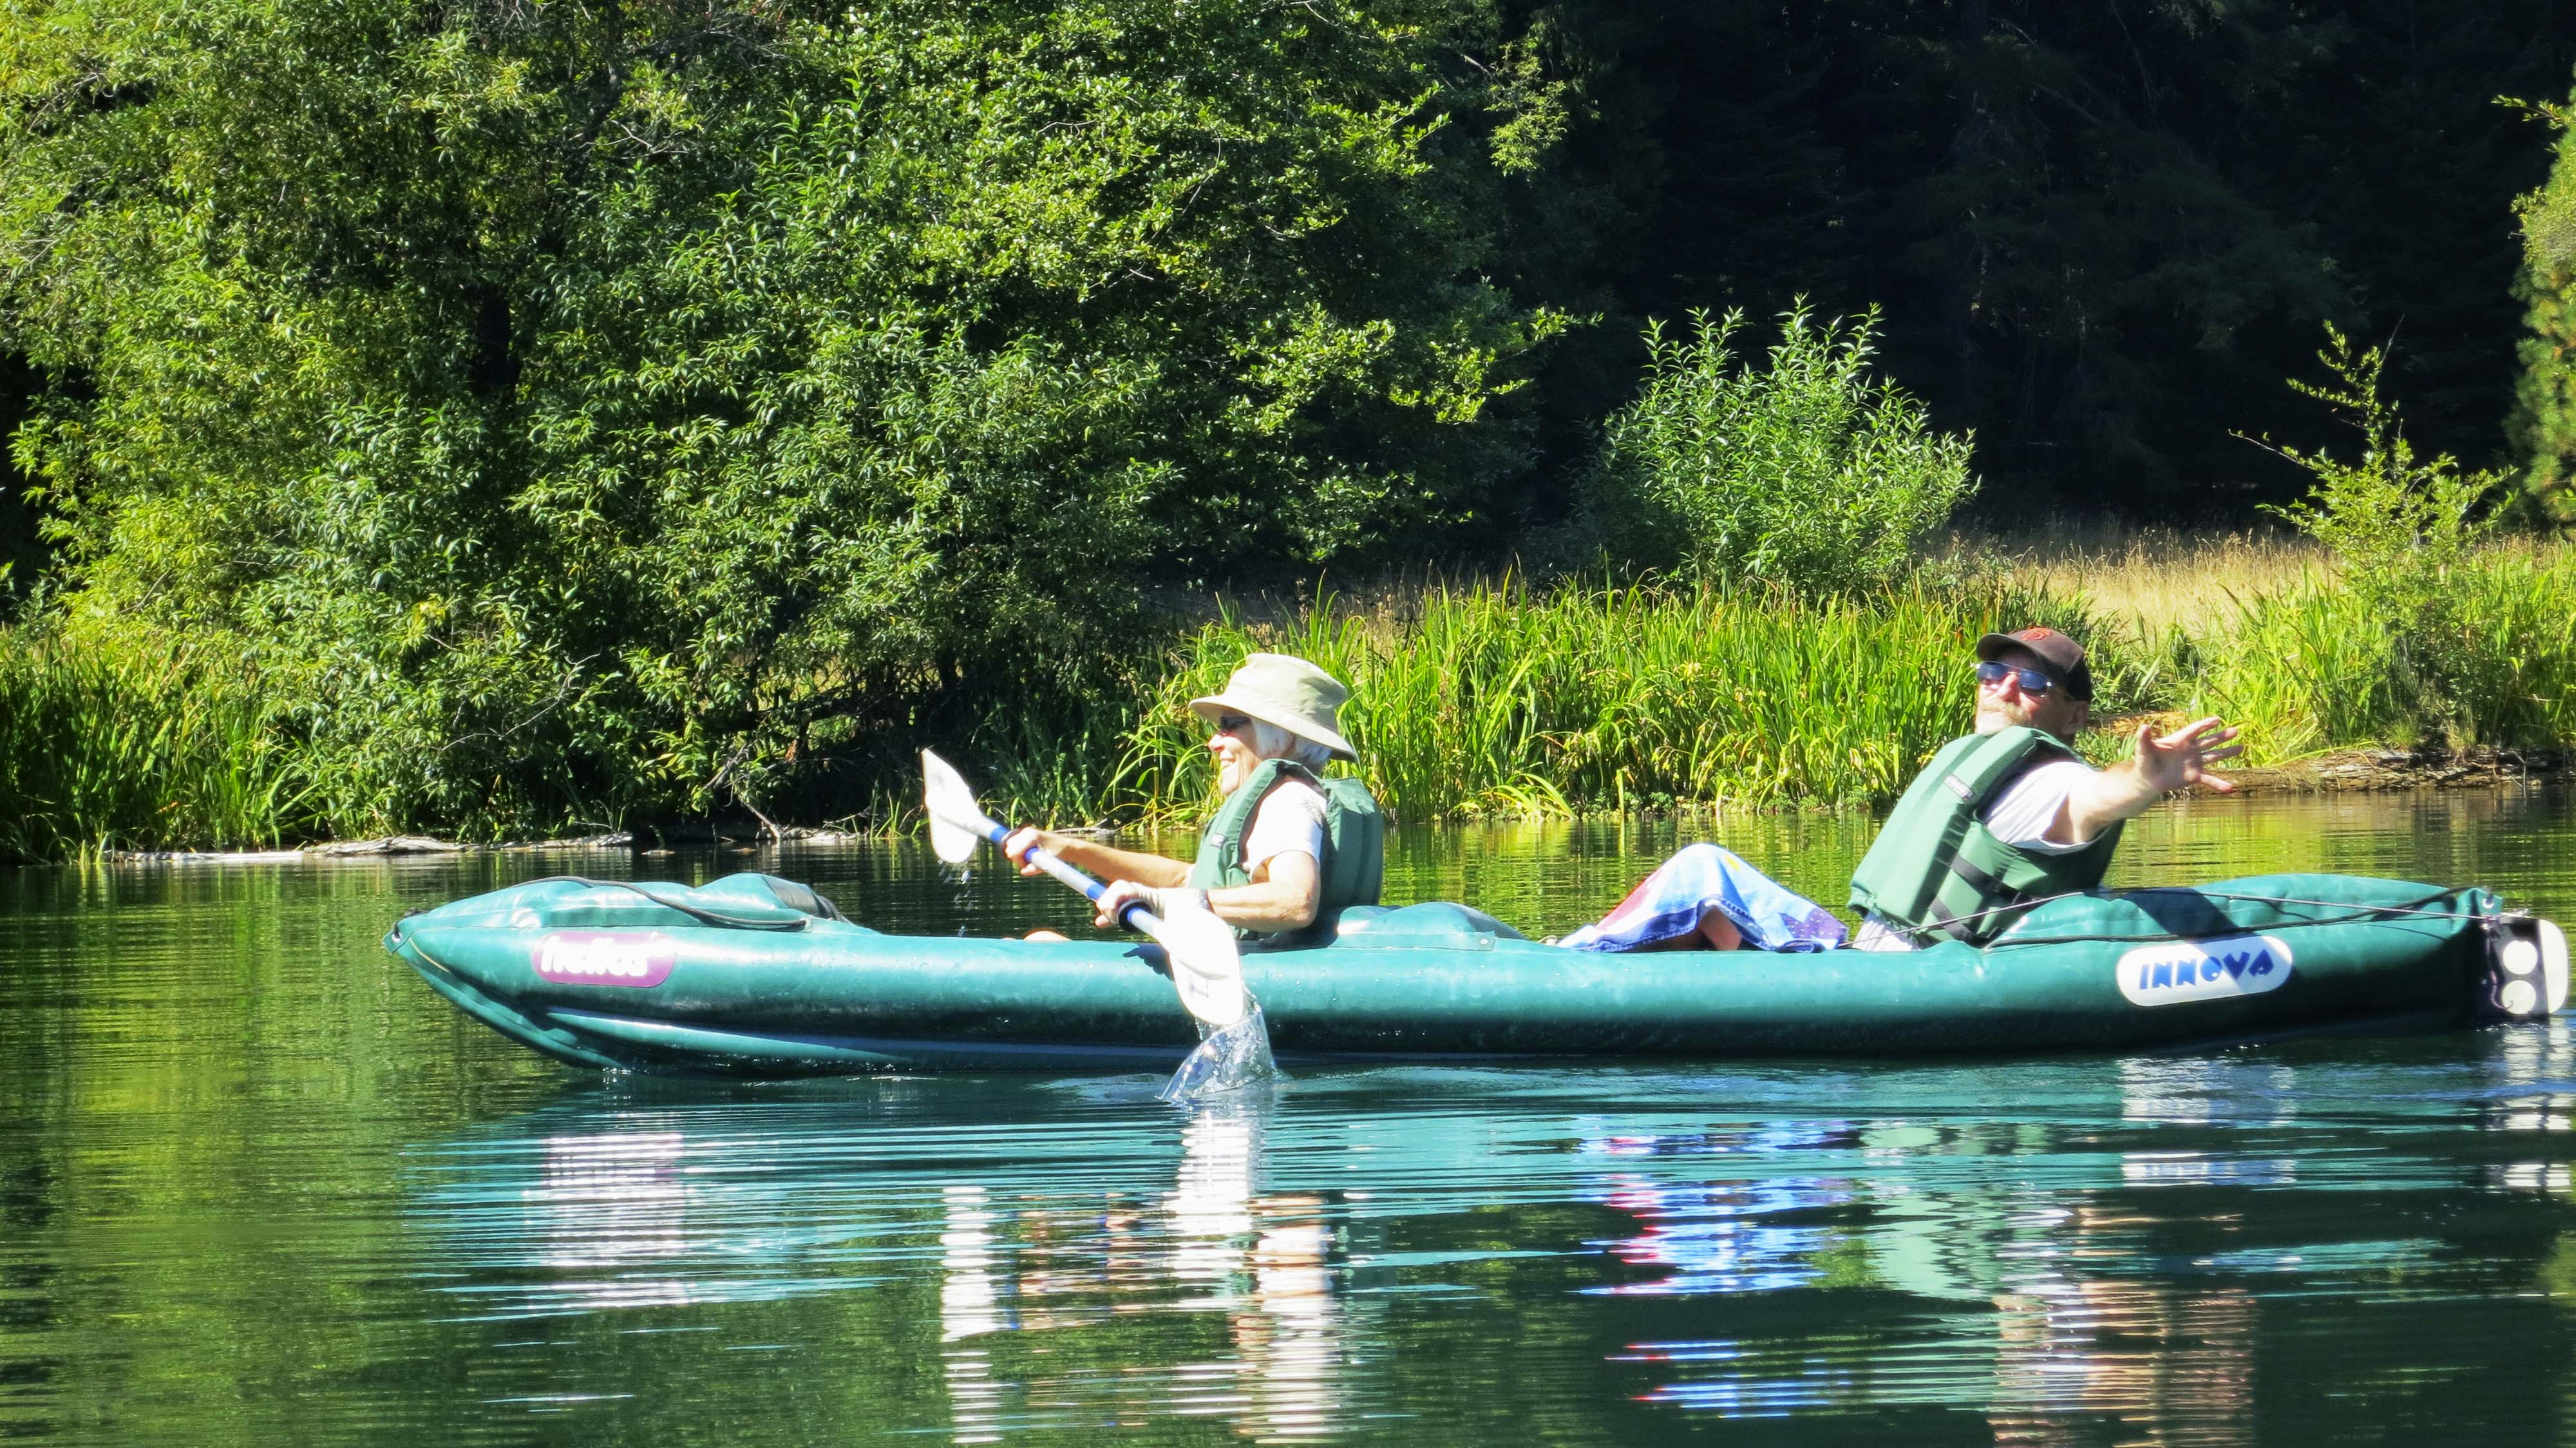 Once a year, the BSBC comes to our house in Oregon for 2-3 days. A couple of years ago we took them kayaking on Squaw Lakes. In this photo Ken Lake hides his paddle so it looks like his wife, Leslie, is doing all the work.